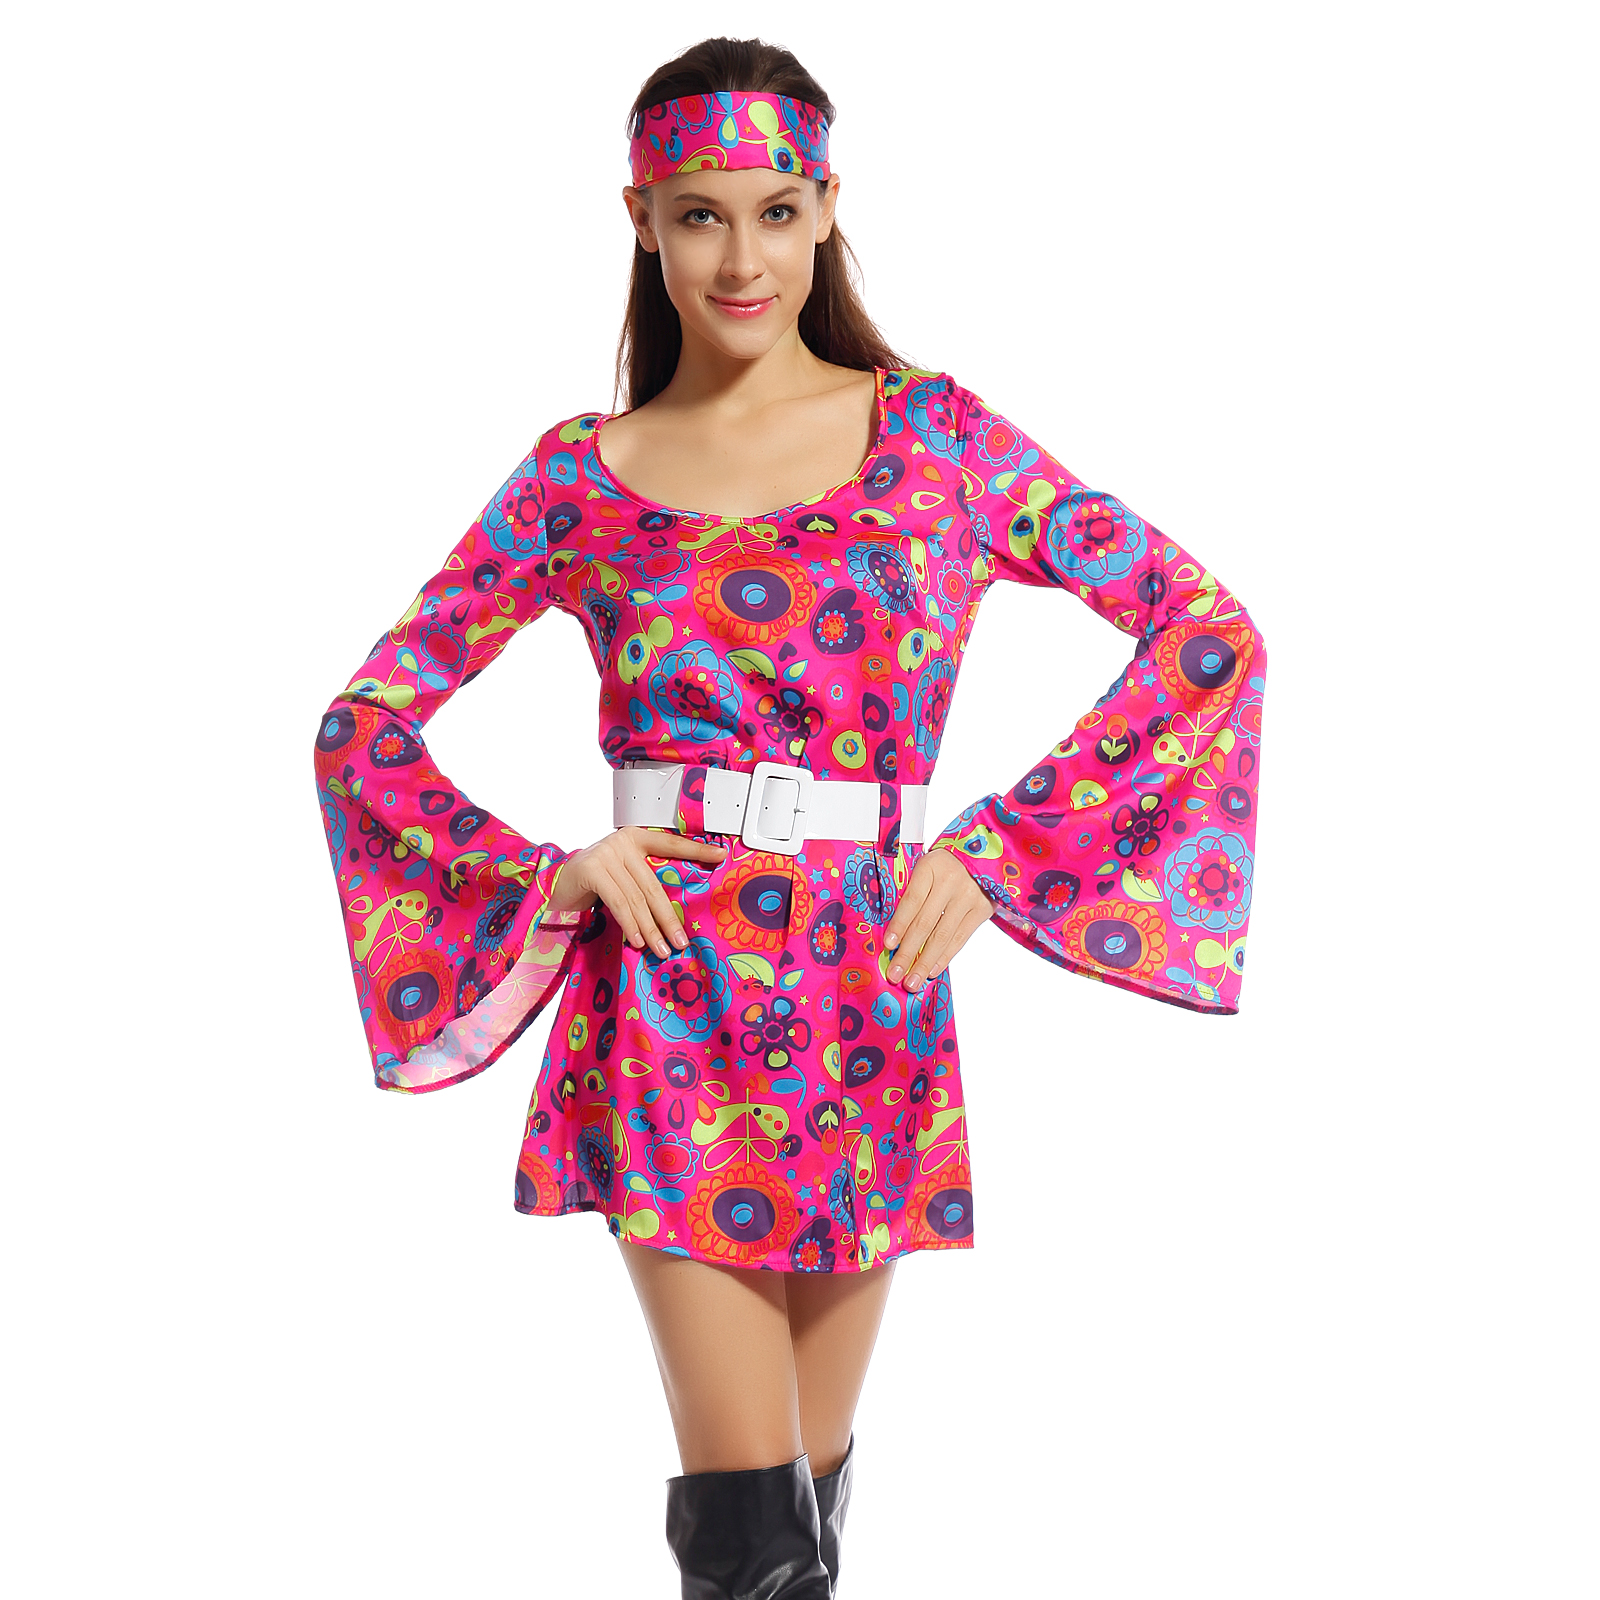 retro flower go go dress groovy hippie girl fancy dress 60s 70s hippy costume ebay. Black Bedroom Furniture Sets. Home Design Ideas